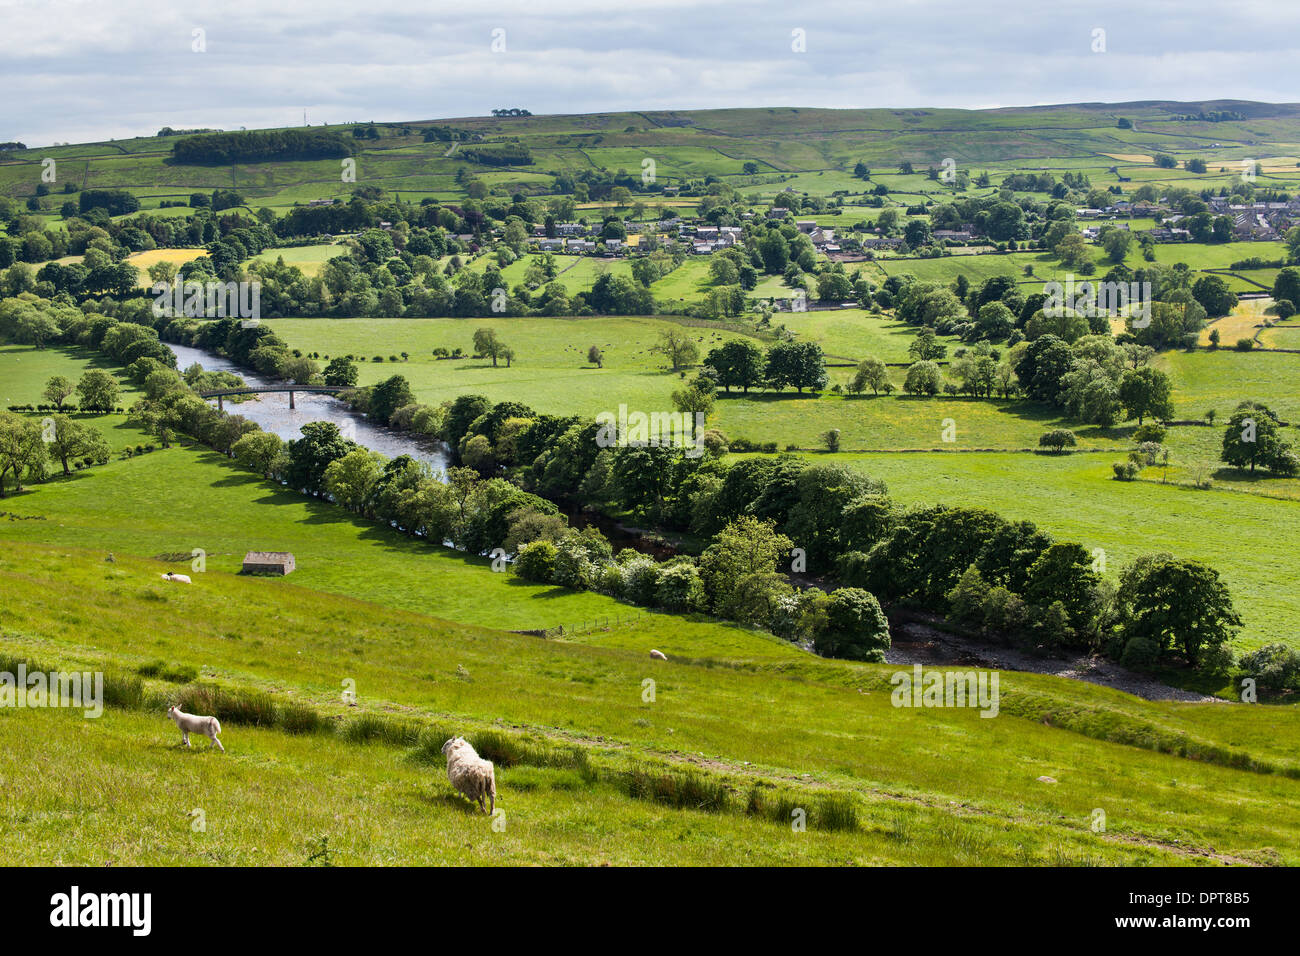 River Tees and Meadows, Upper Teesdale, England - Stock Image